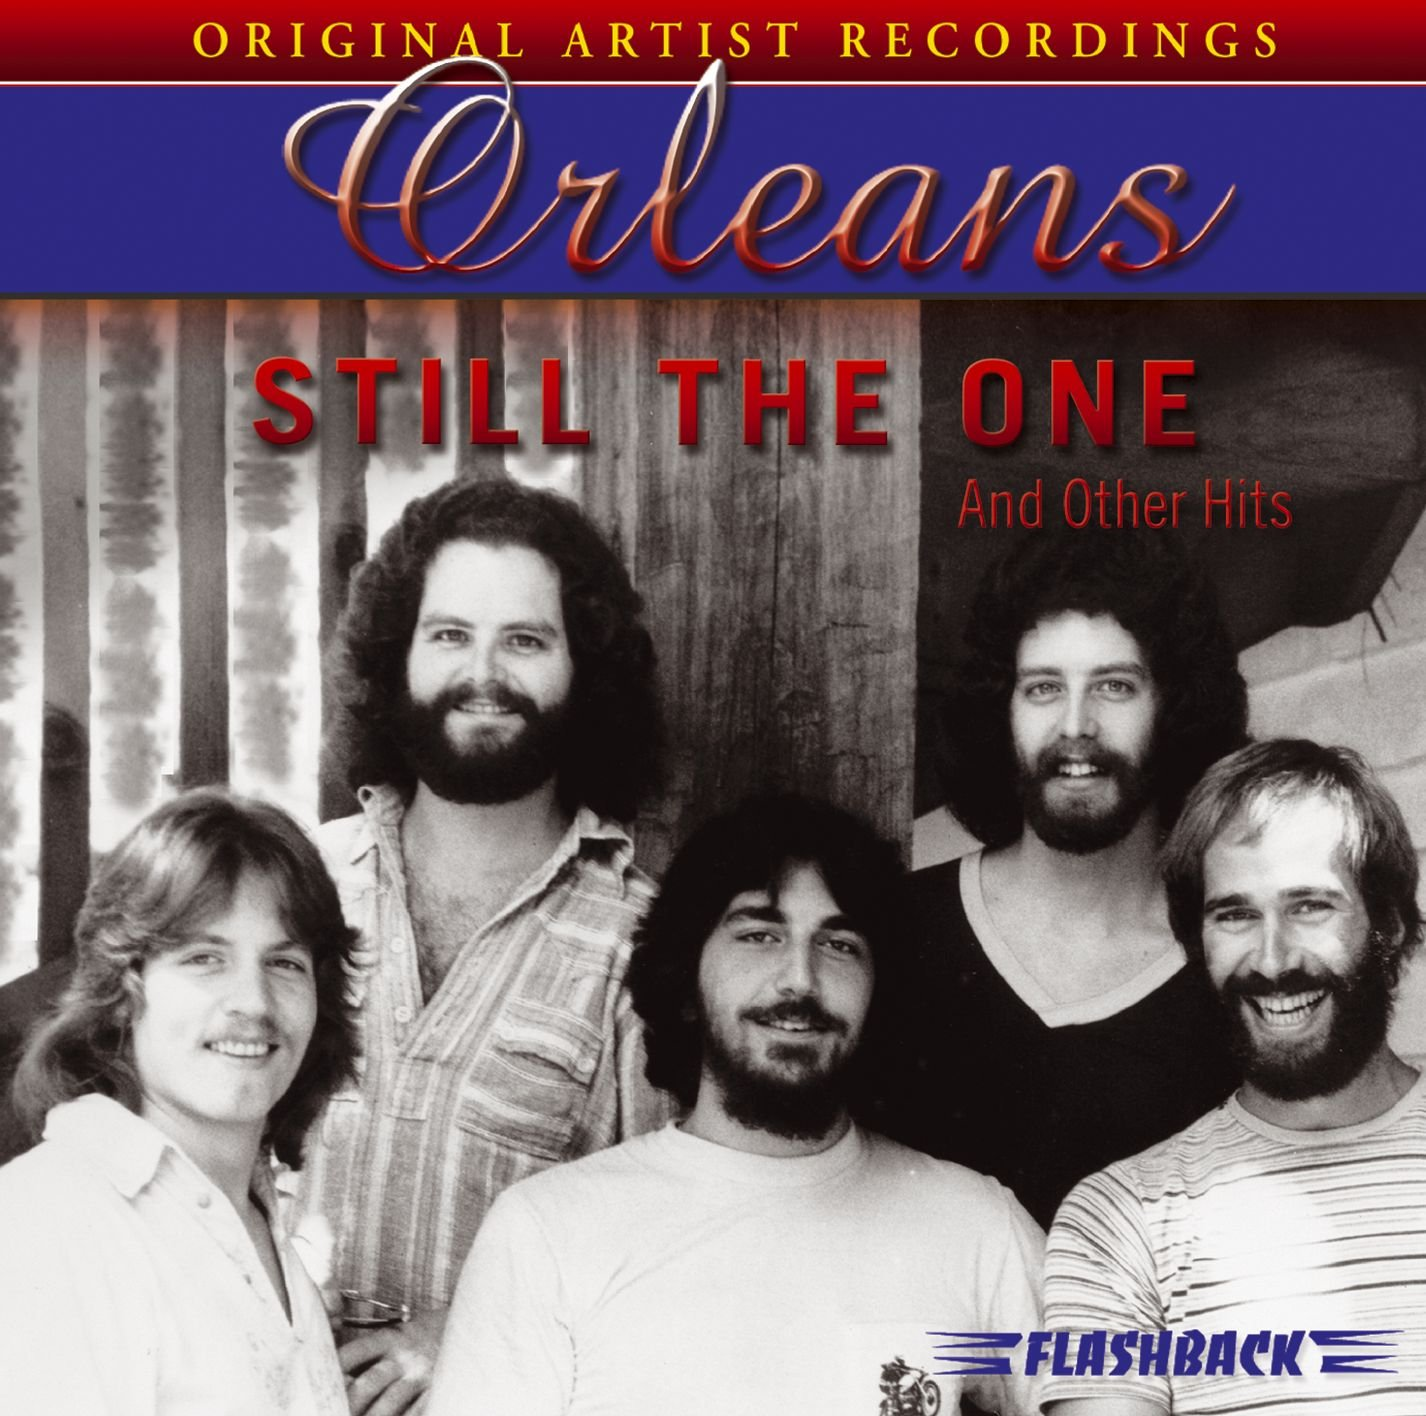 CD : Orleans - Still The One And Other Hits (CD)